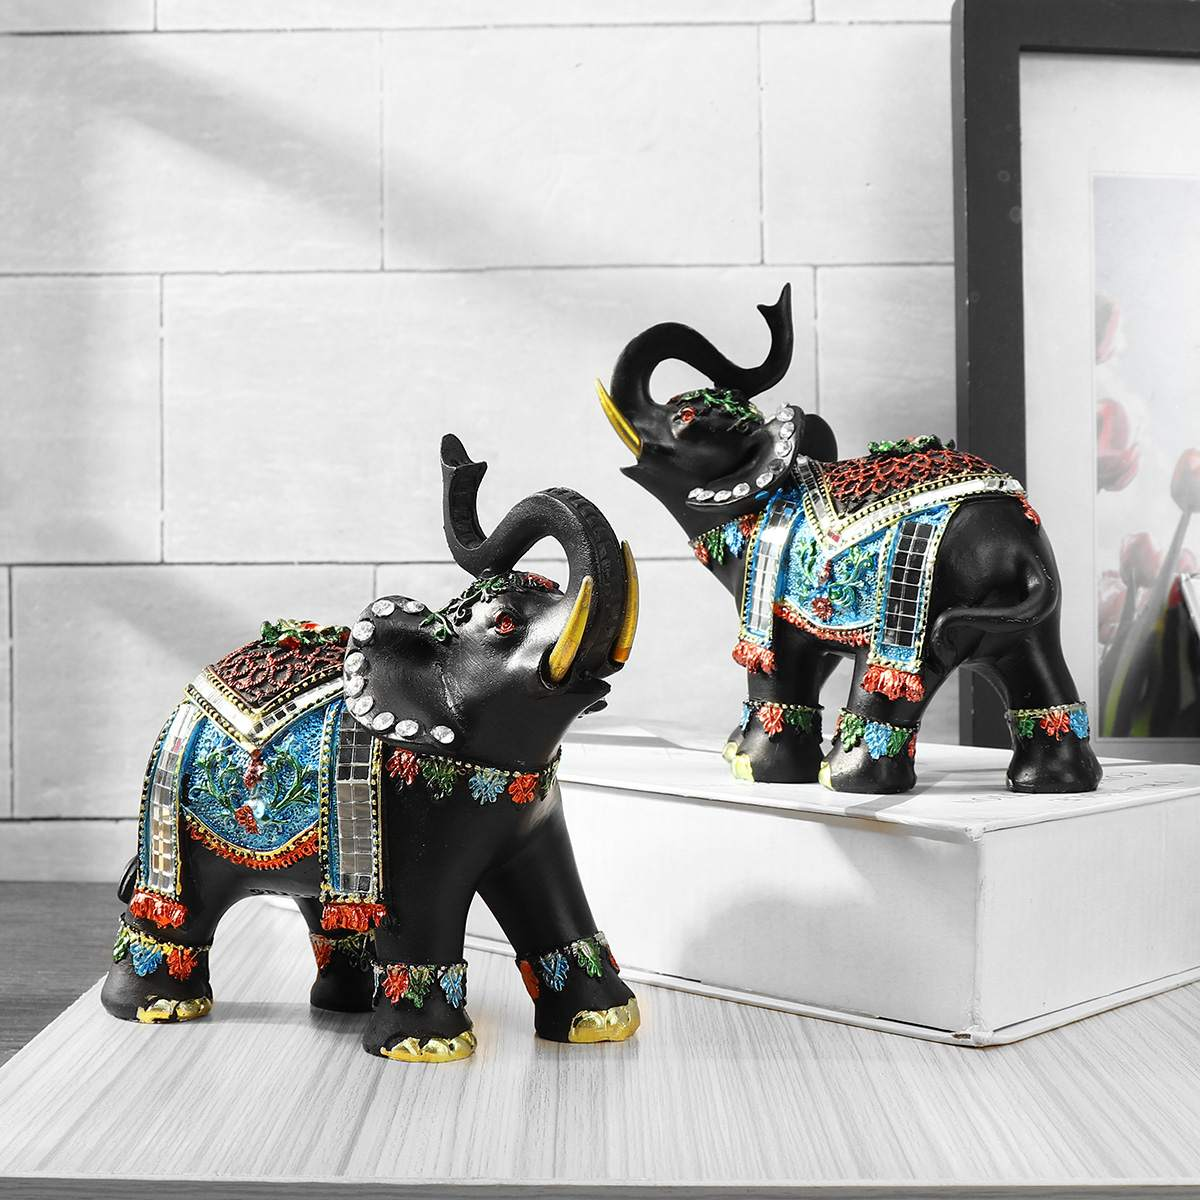 1Pcs Elephant Resin Home Decoration Right Or Left Home Decor Figurines Art Crafts For Home For Coffee Bar